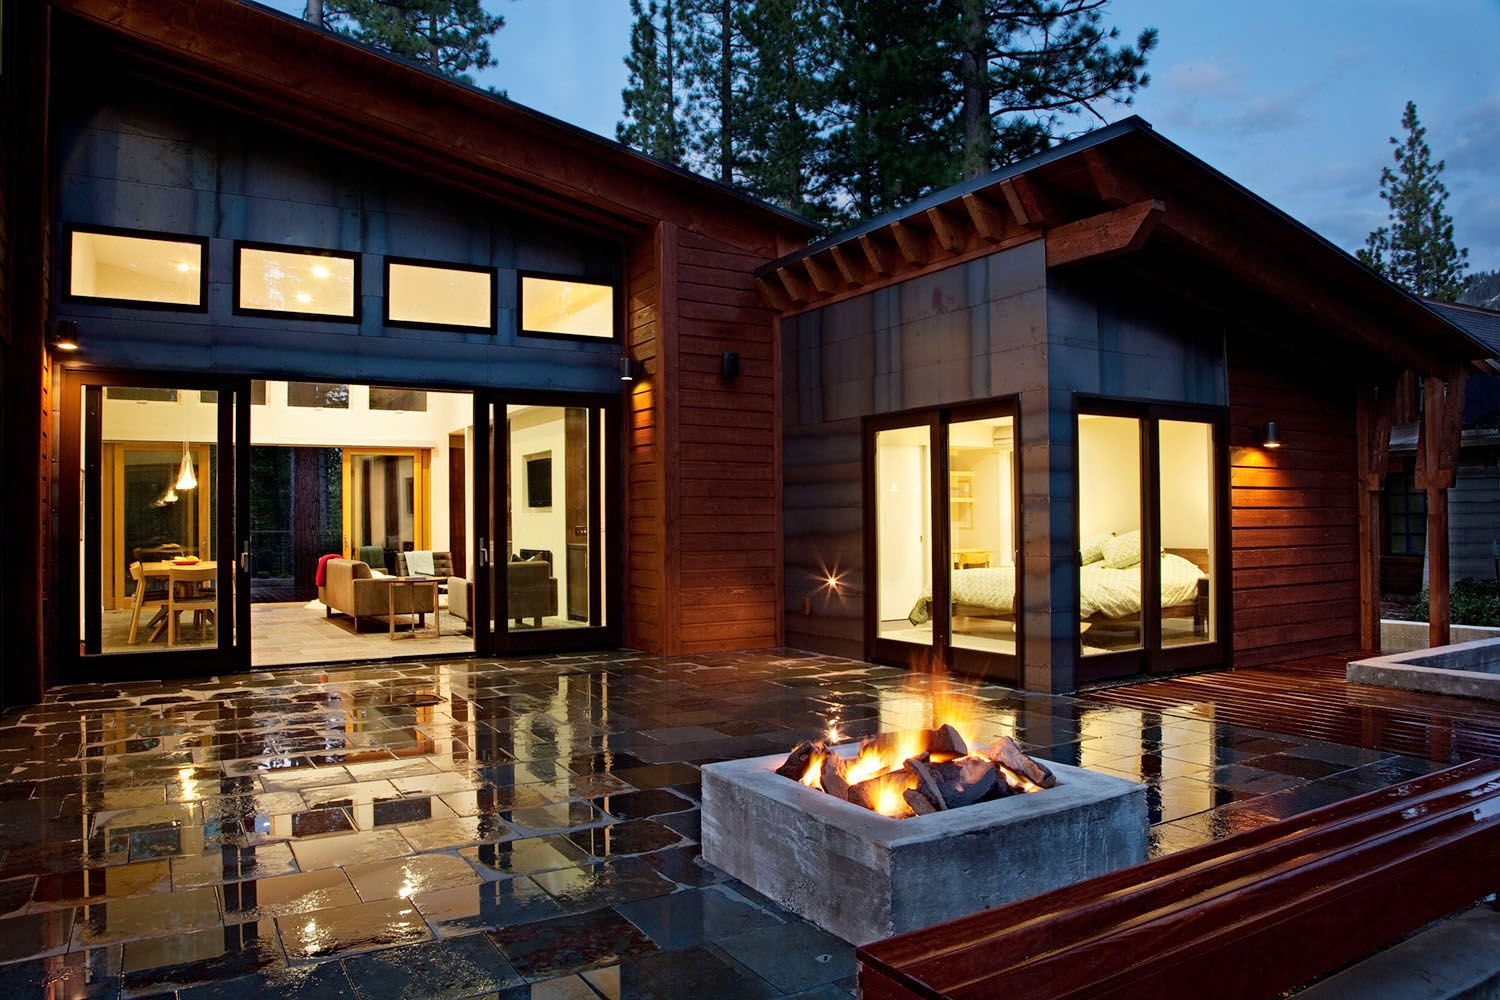 1000+ images about mountain house on Pinterest - ^